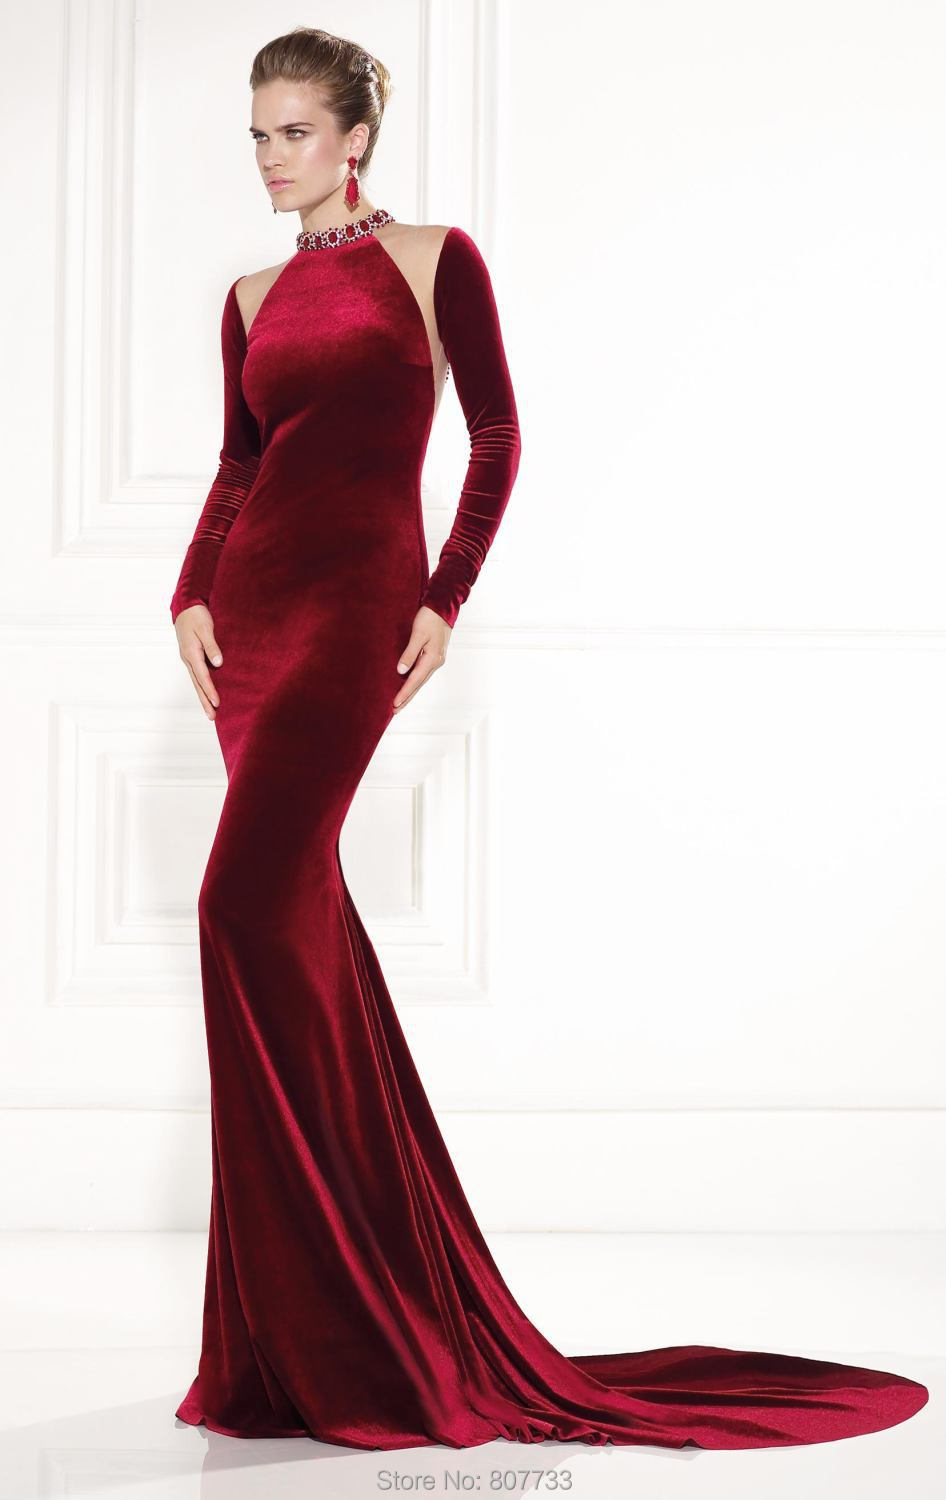 W061 New Design cut mermaid high neck beaded back long sleeve velvet  evening dresses wine color-in Evening Dresses from Weddings   Events on  Aliexpress.com ... e4a7201c8713